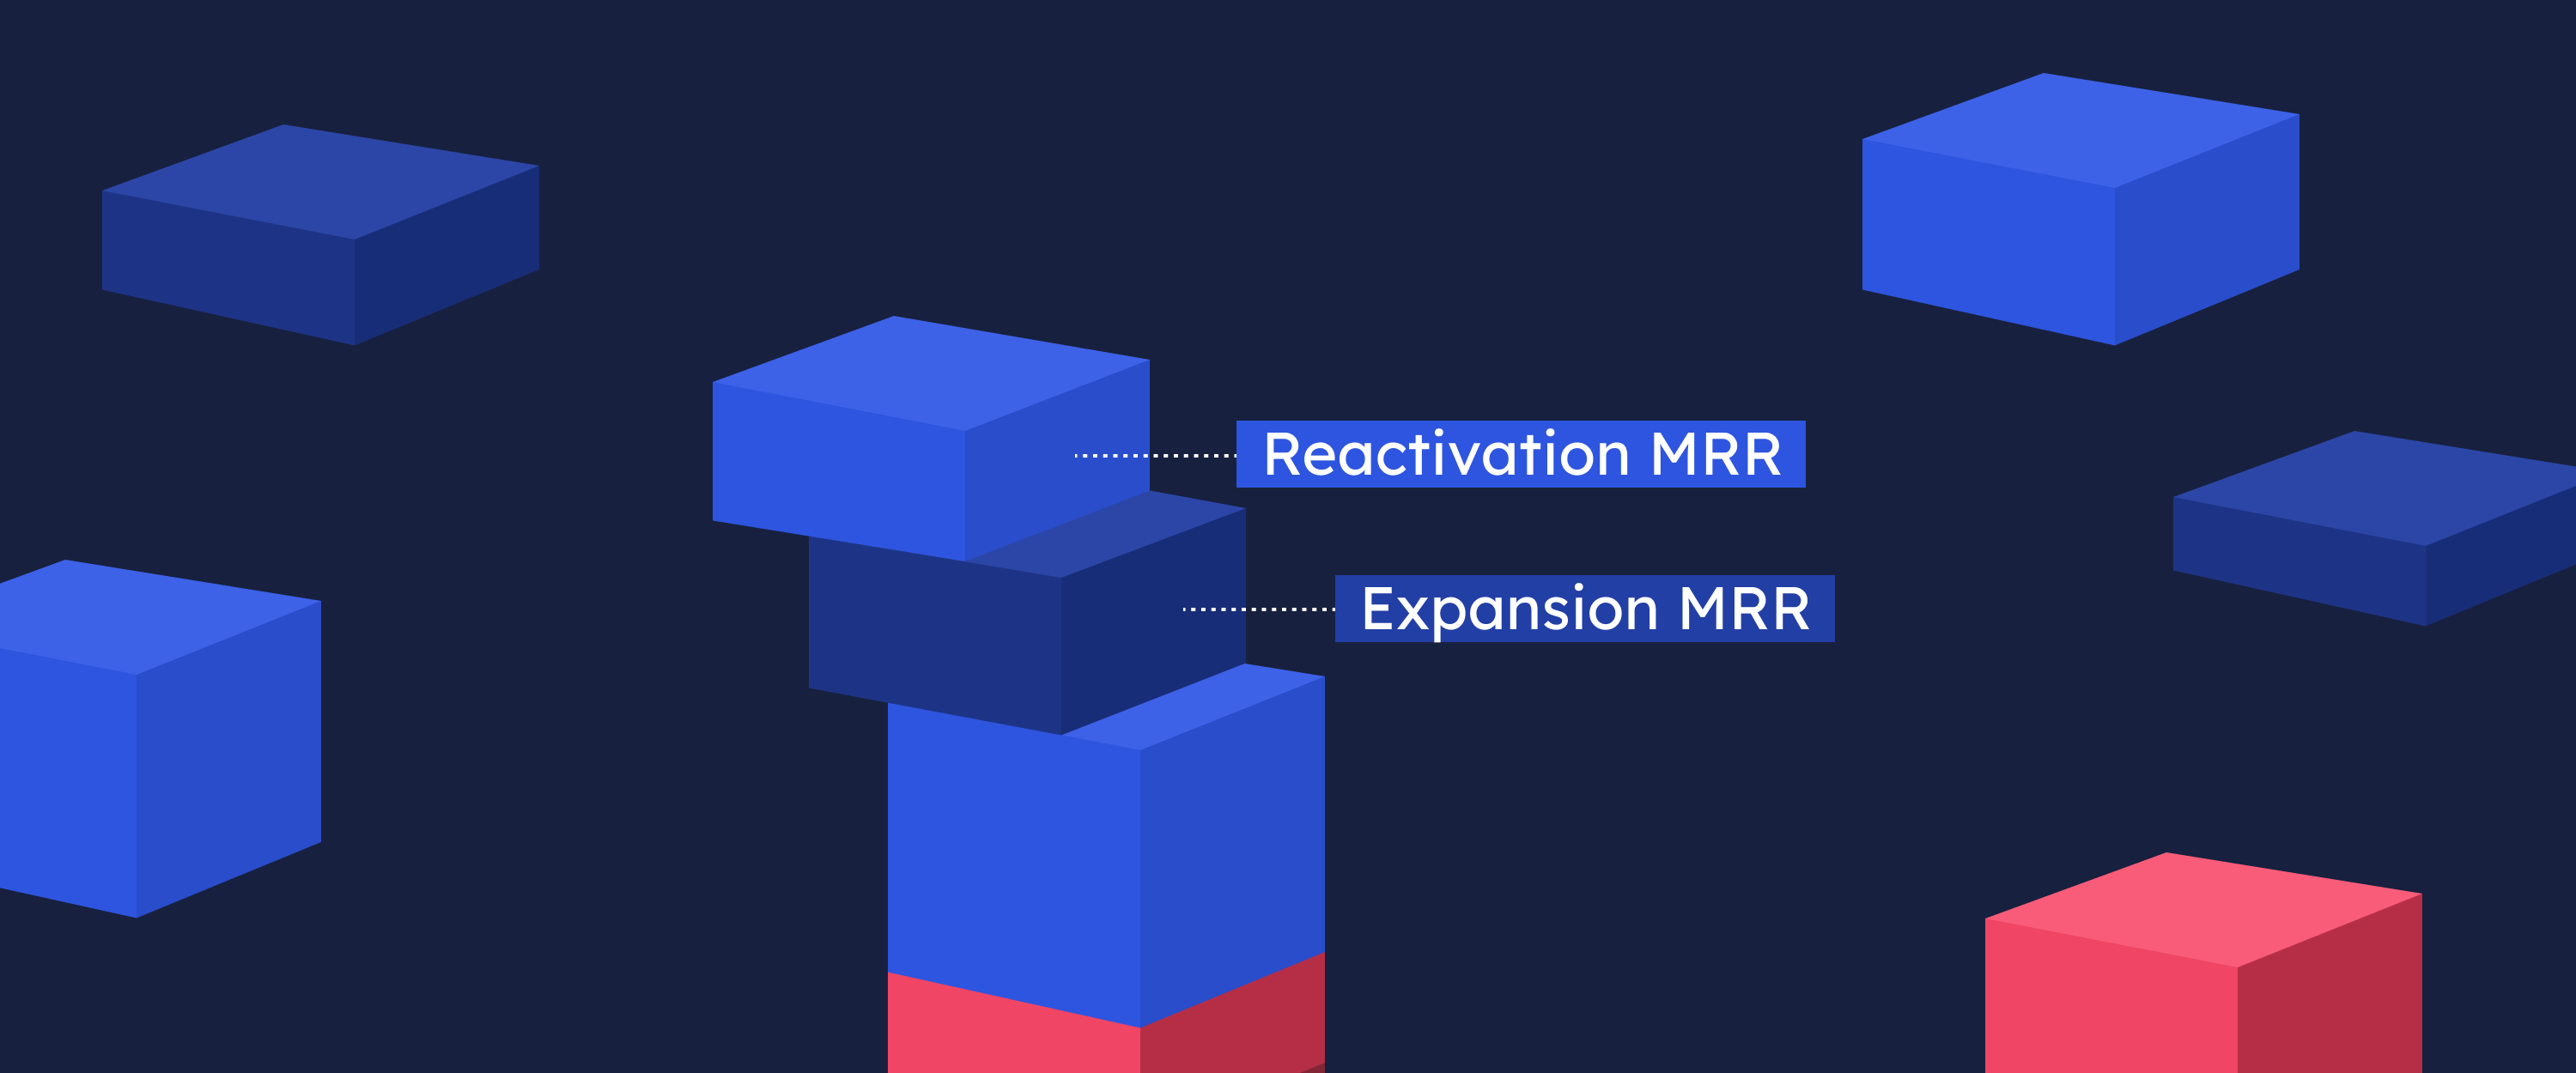 reactivation and expansion mrr